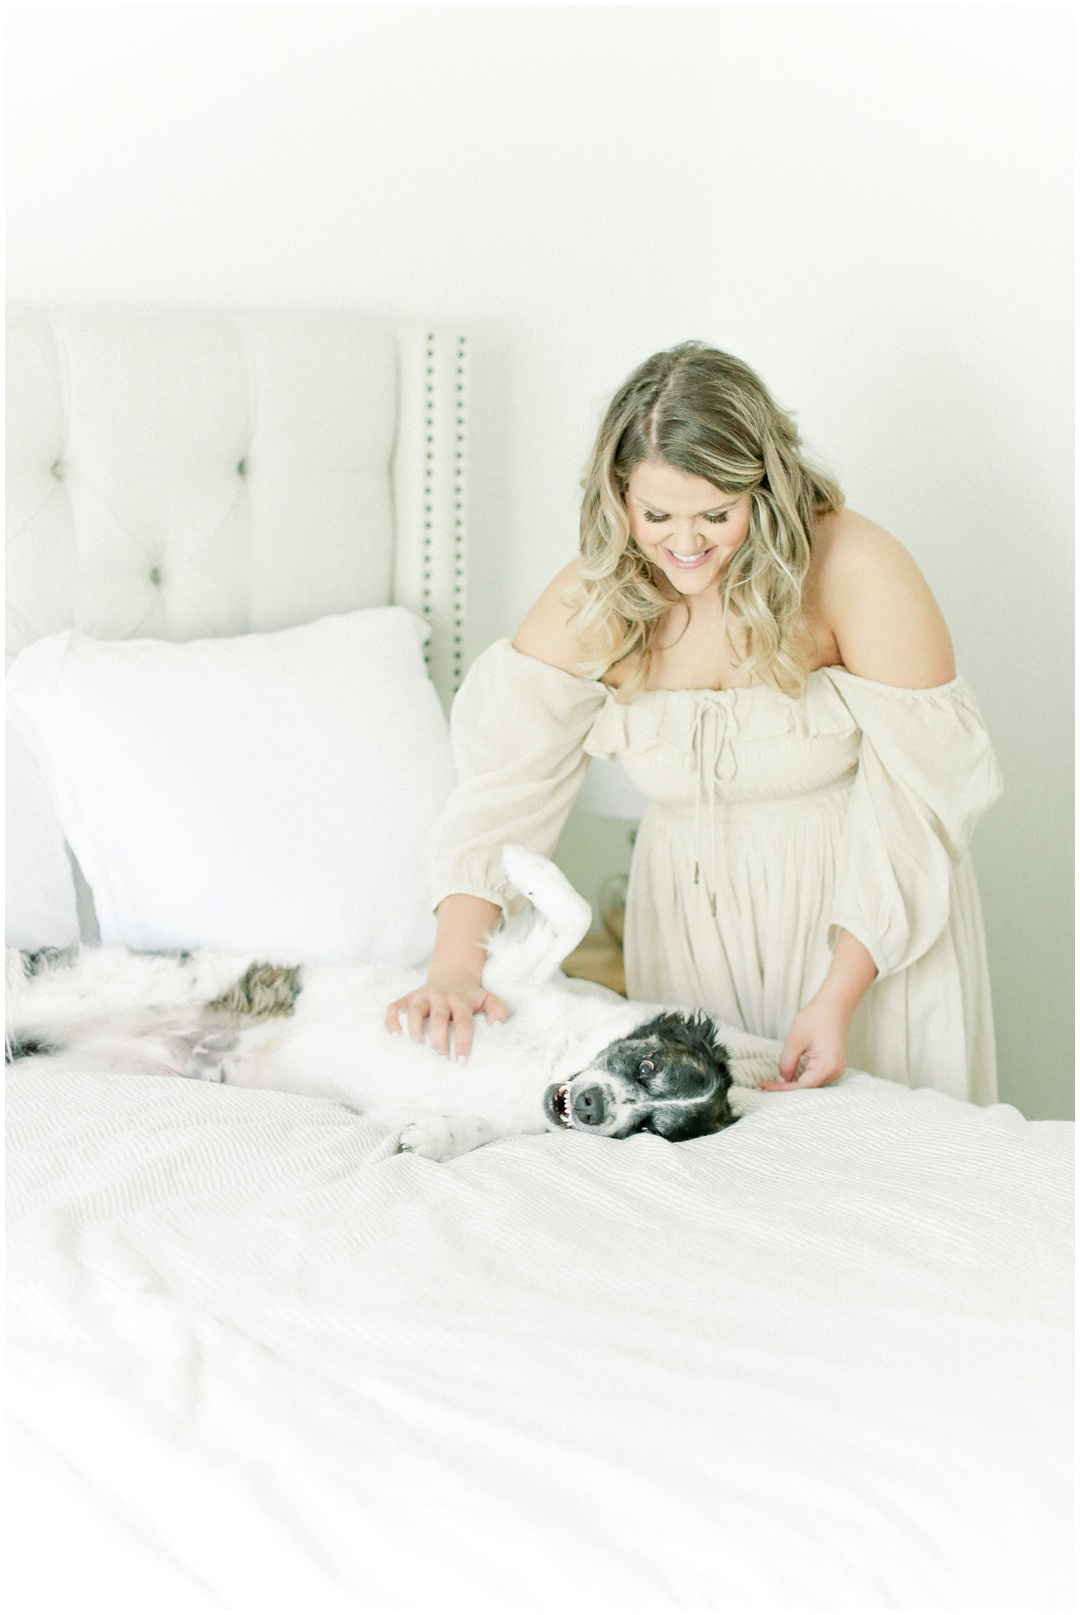 Newport_Beach_Newborn_Light_Airy_Natural_Photographer_Newport_Beach_In-Home_Photographer_Orange_County_Family_Photographer_Cori_Kleckner_Photography_Huntington_Beach_Photographer_Family_OC_Newborn_Meghan_Sullivan_Newborn_Family_Greer_Sullivan_3239.jpg